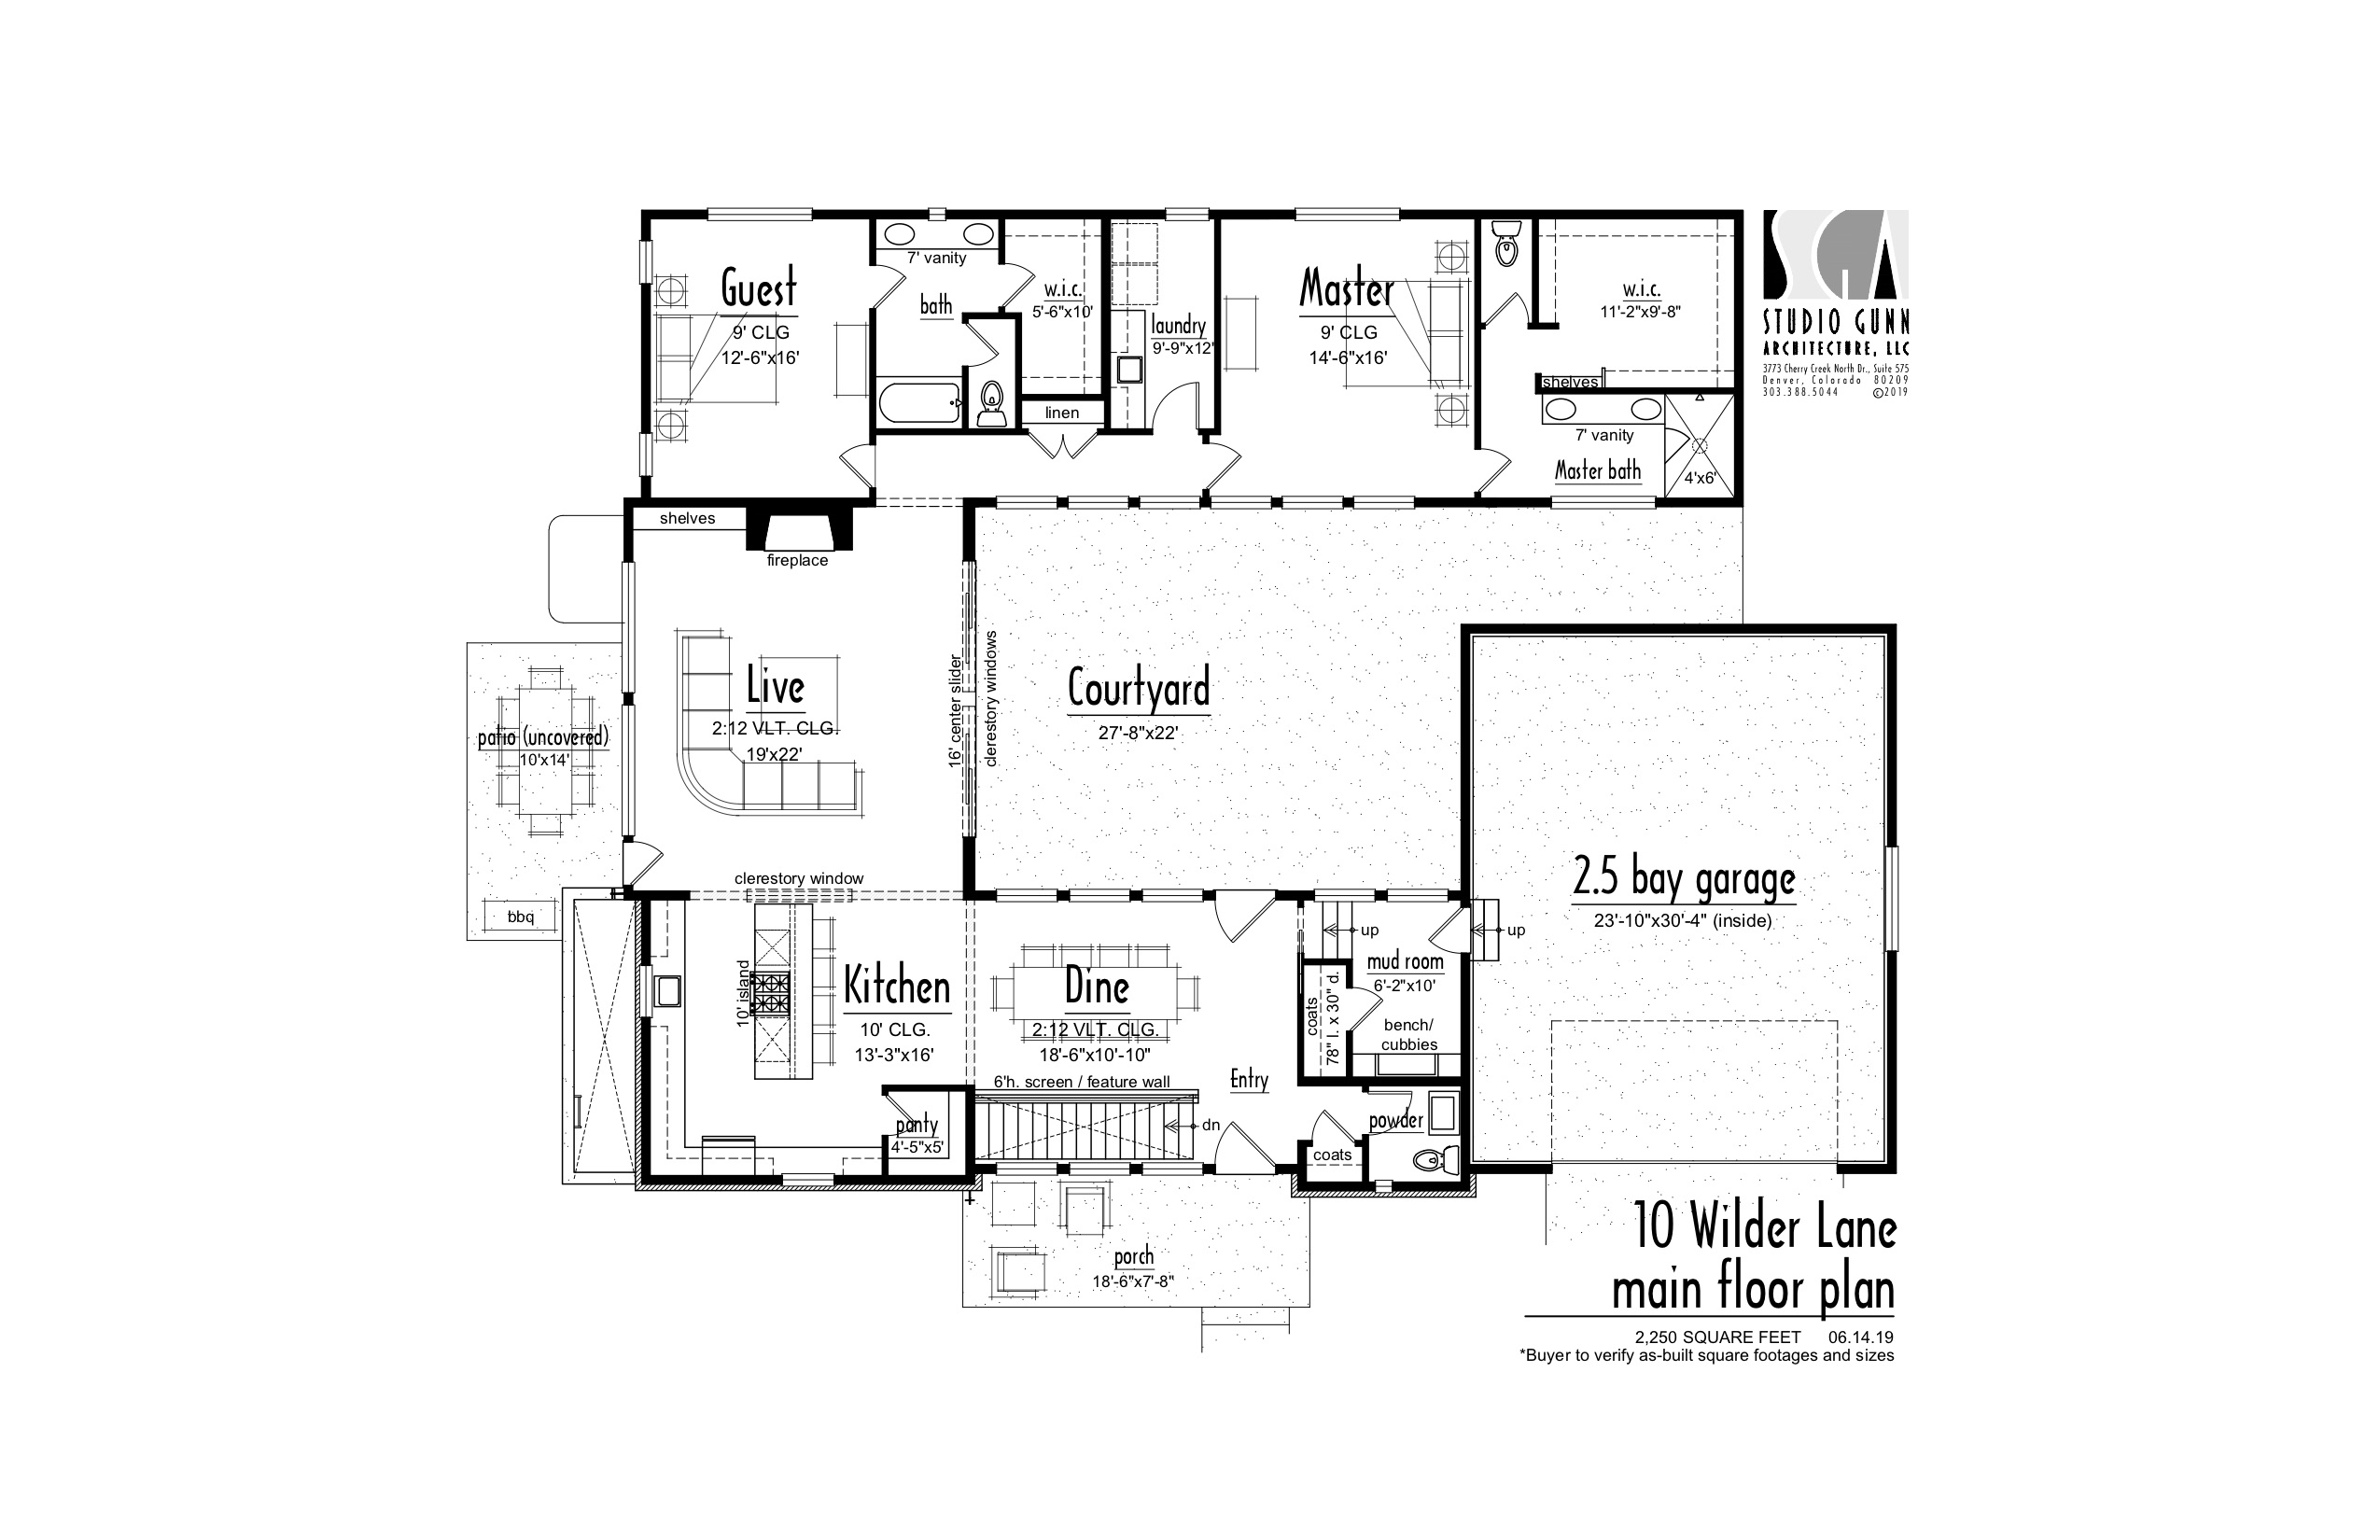 10 WL Main Level Plan 11x17_07.13